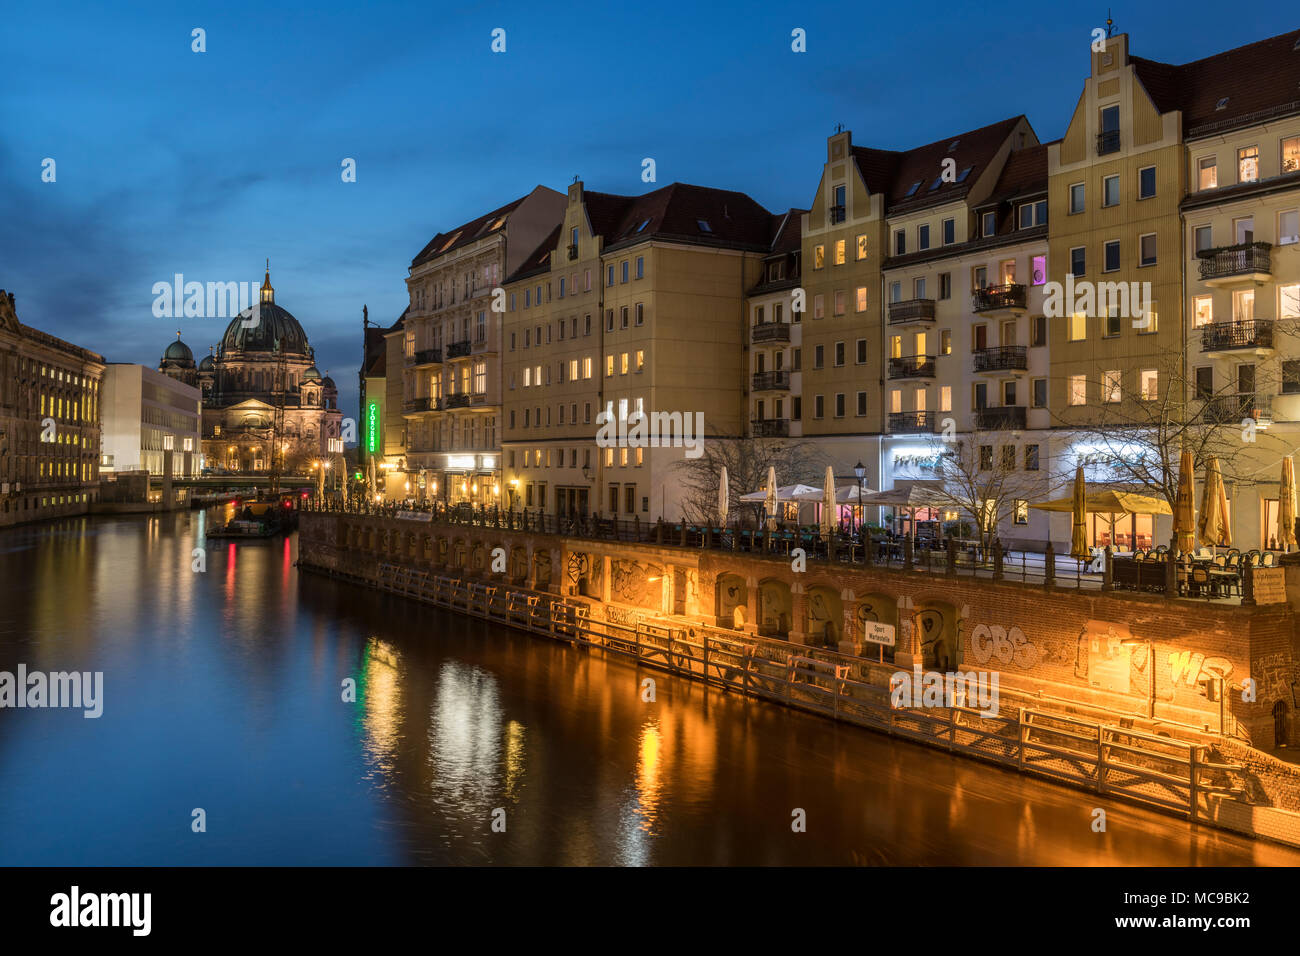 The River Spree, running alongside the Nikolaiviertel, leads towards the historical landmark of Berlin Cathedral. - Stock Image